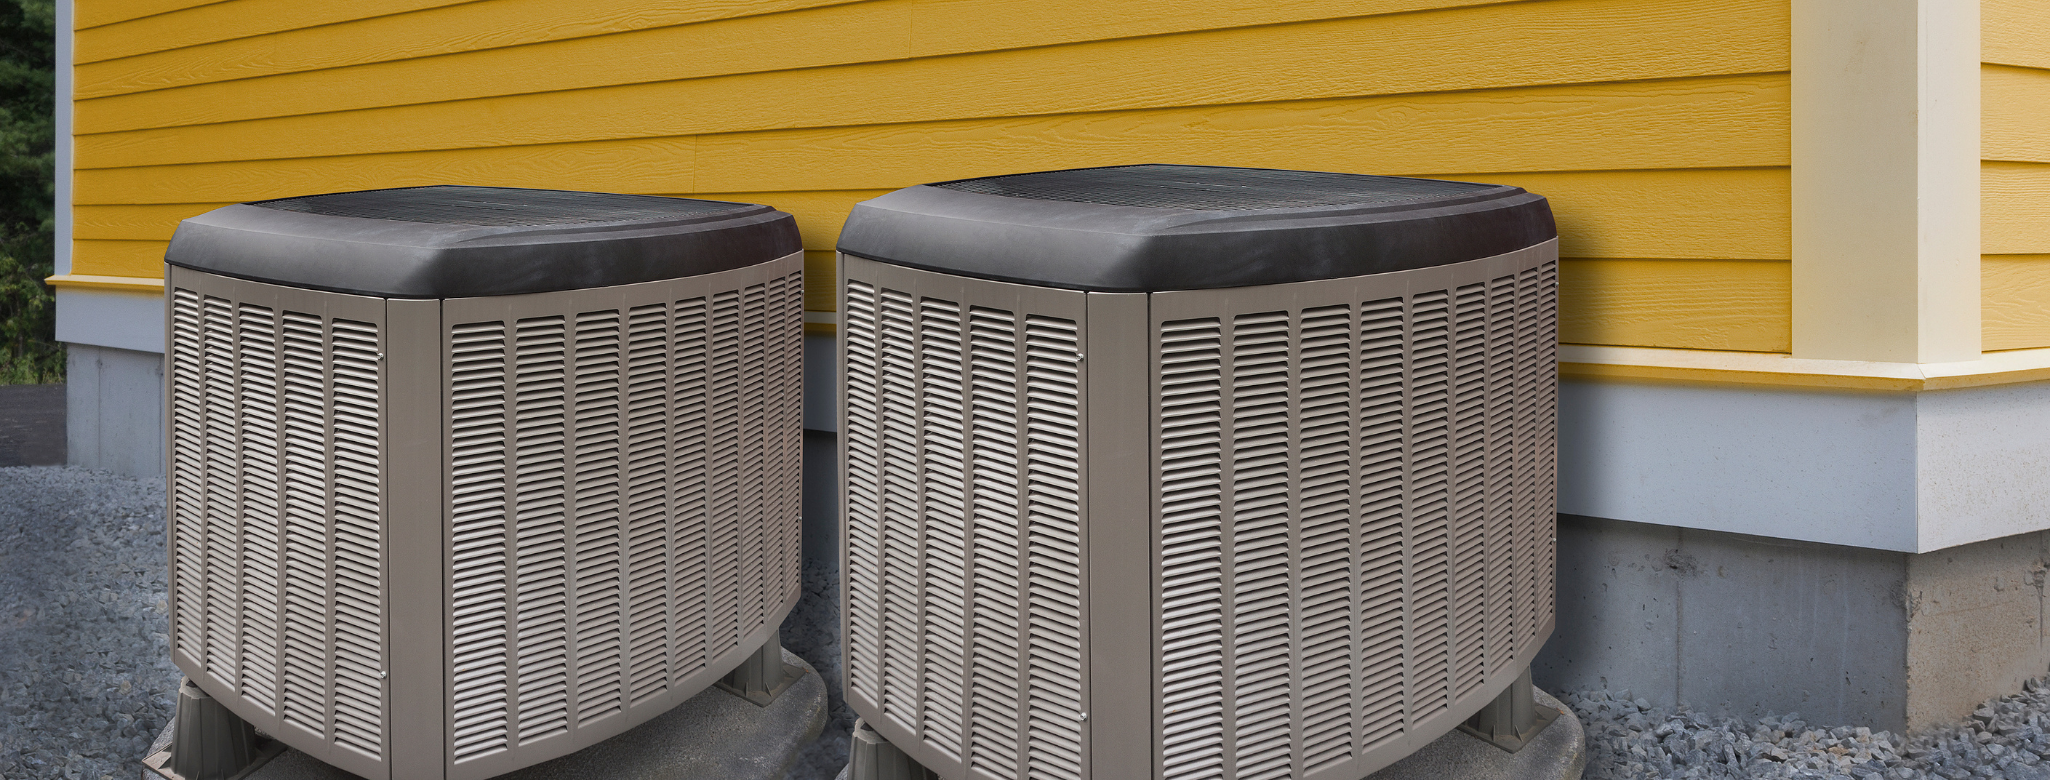 How to Prevent Costly Repairs on Your HVAC System